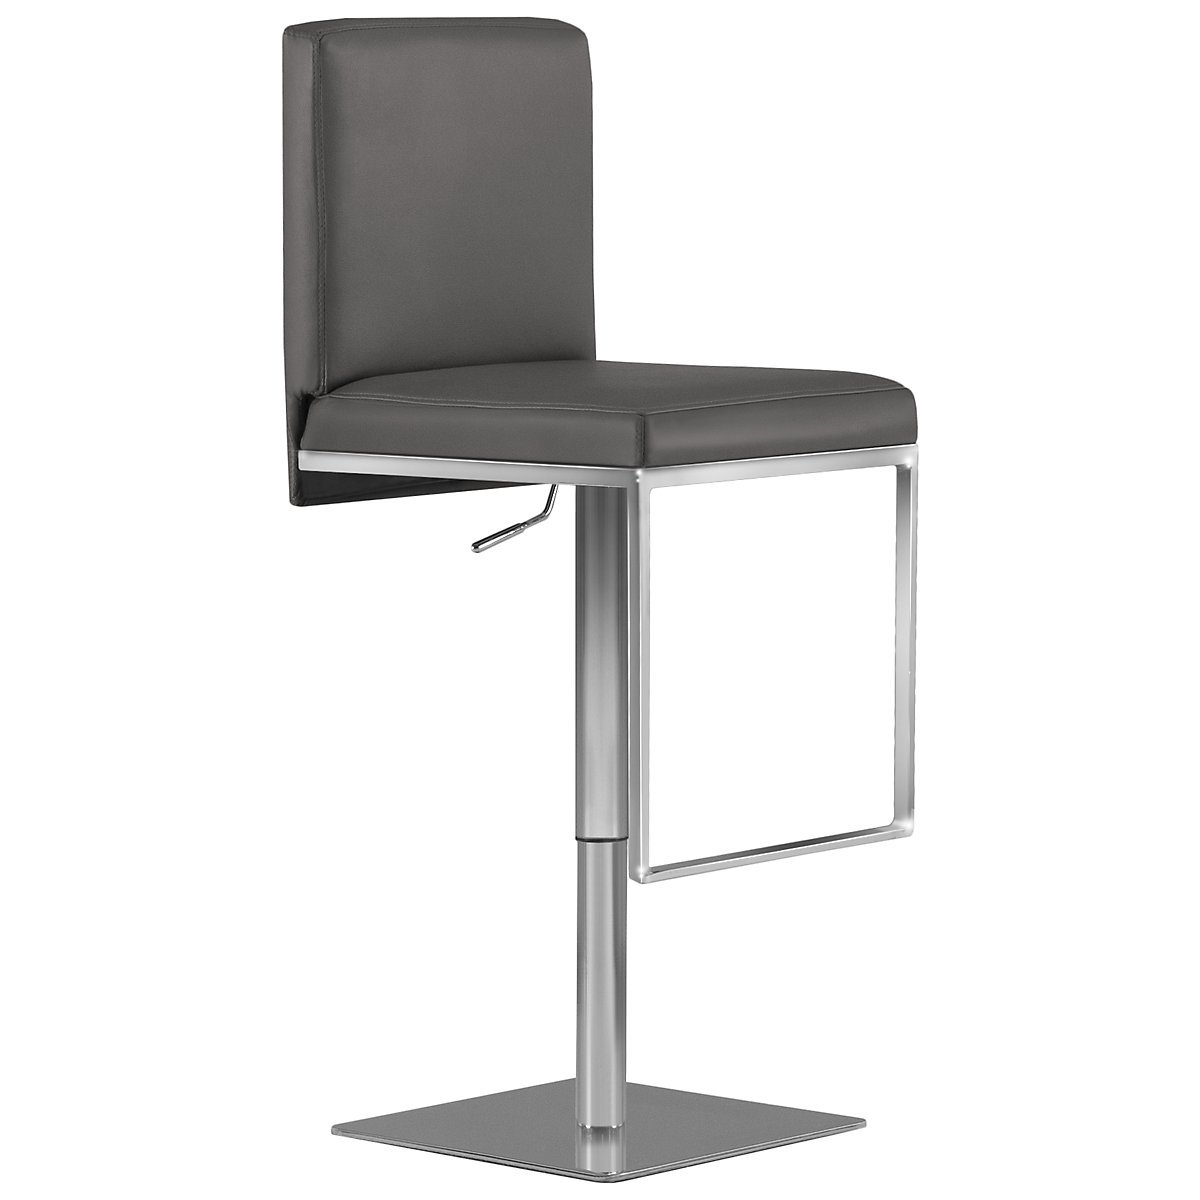 Berlin Gray Upholstered Adjustable Stool